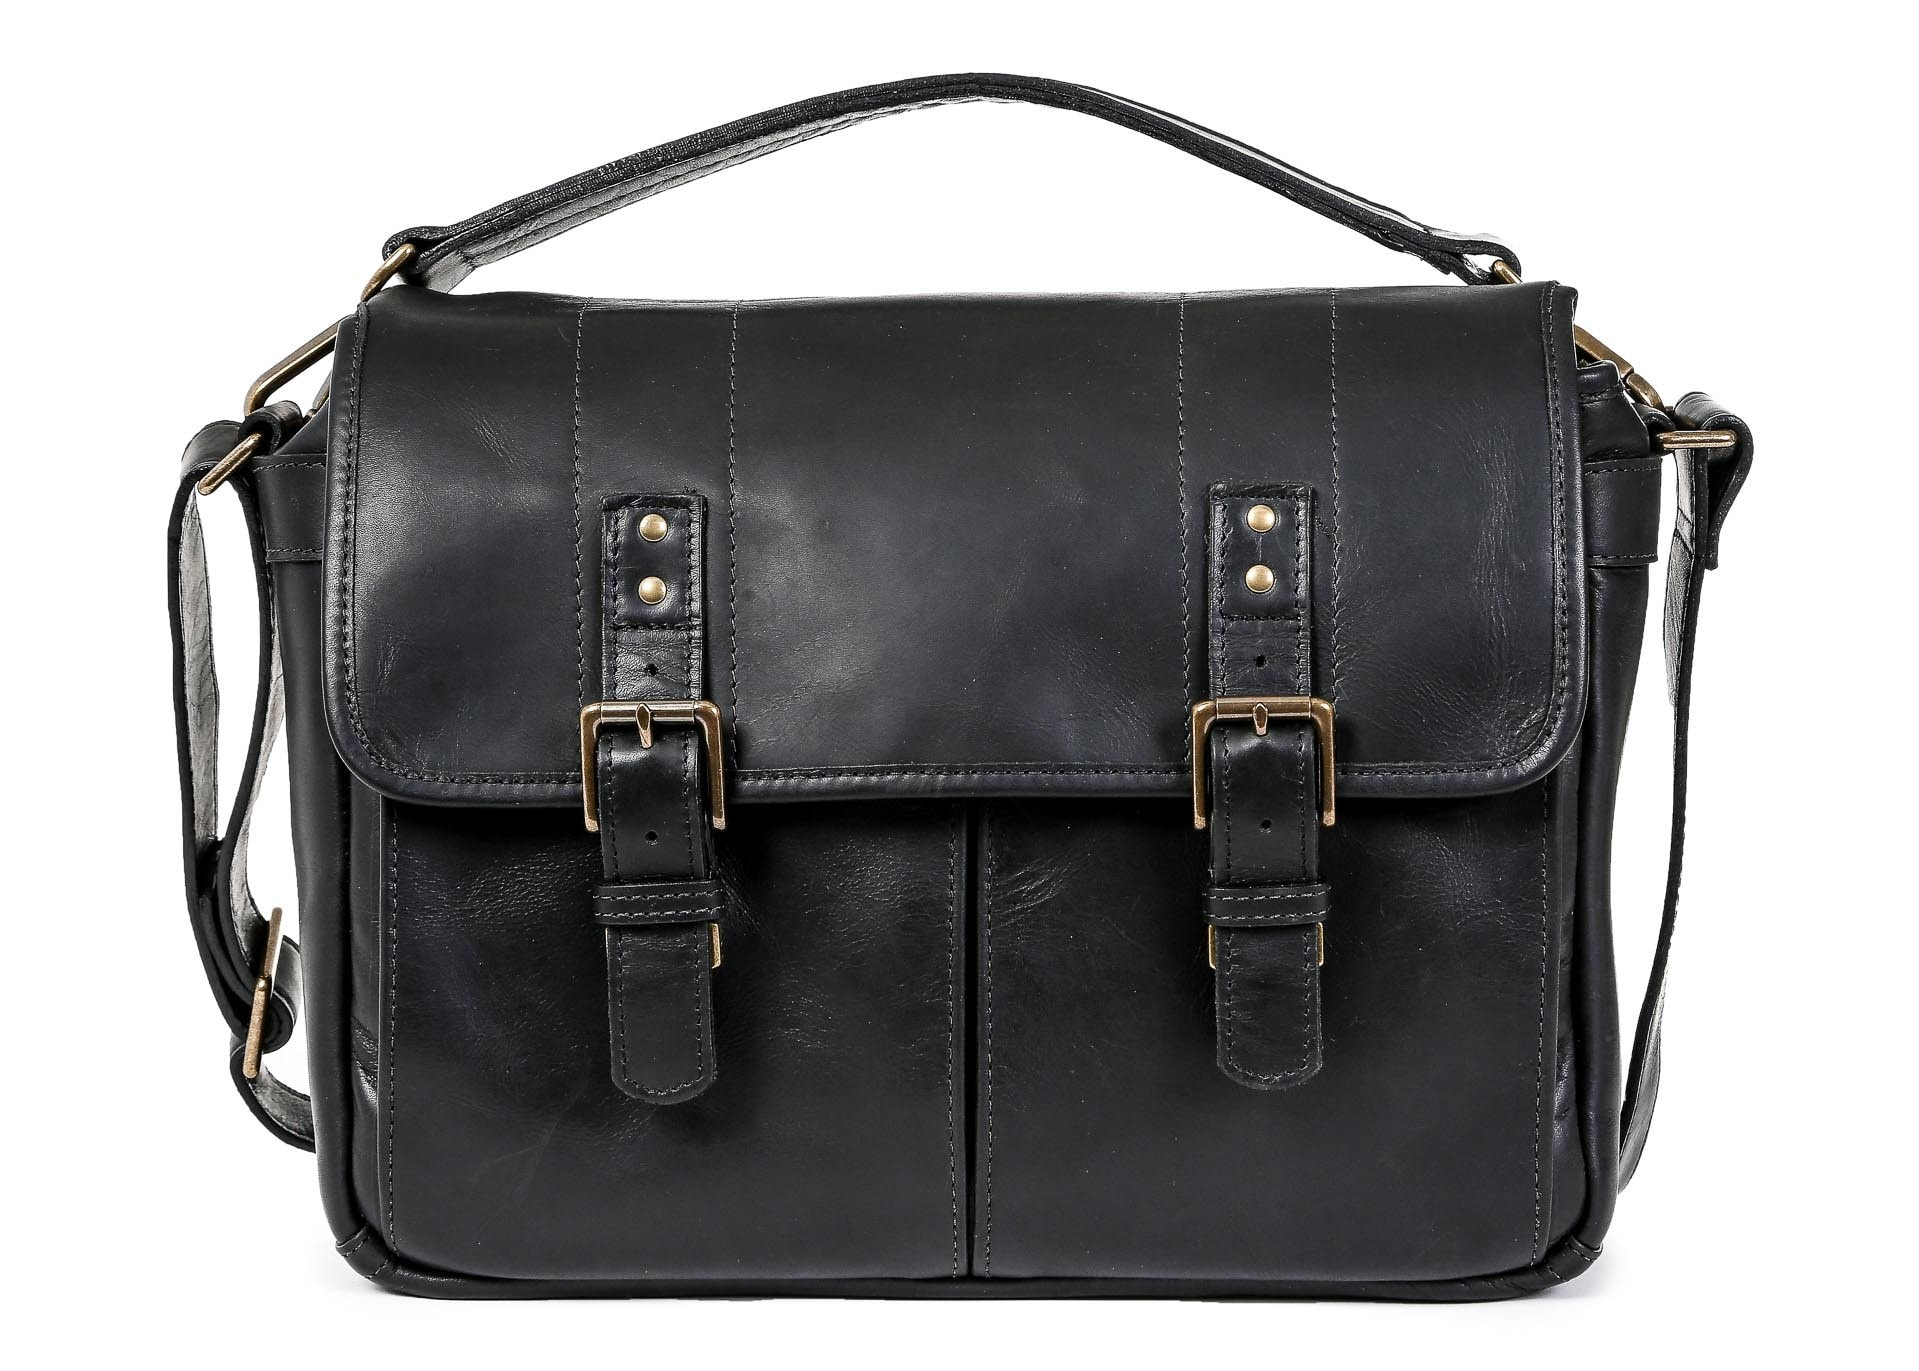 ONA Bags Leather Prince Street Black